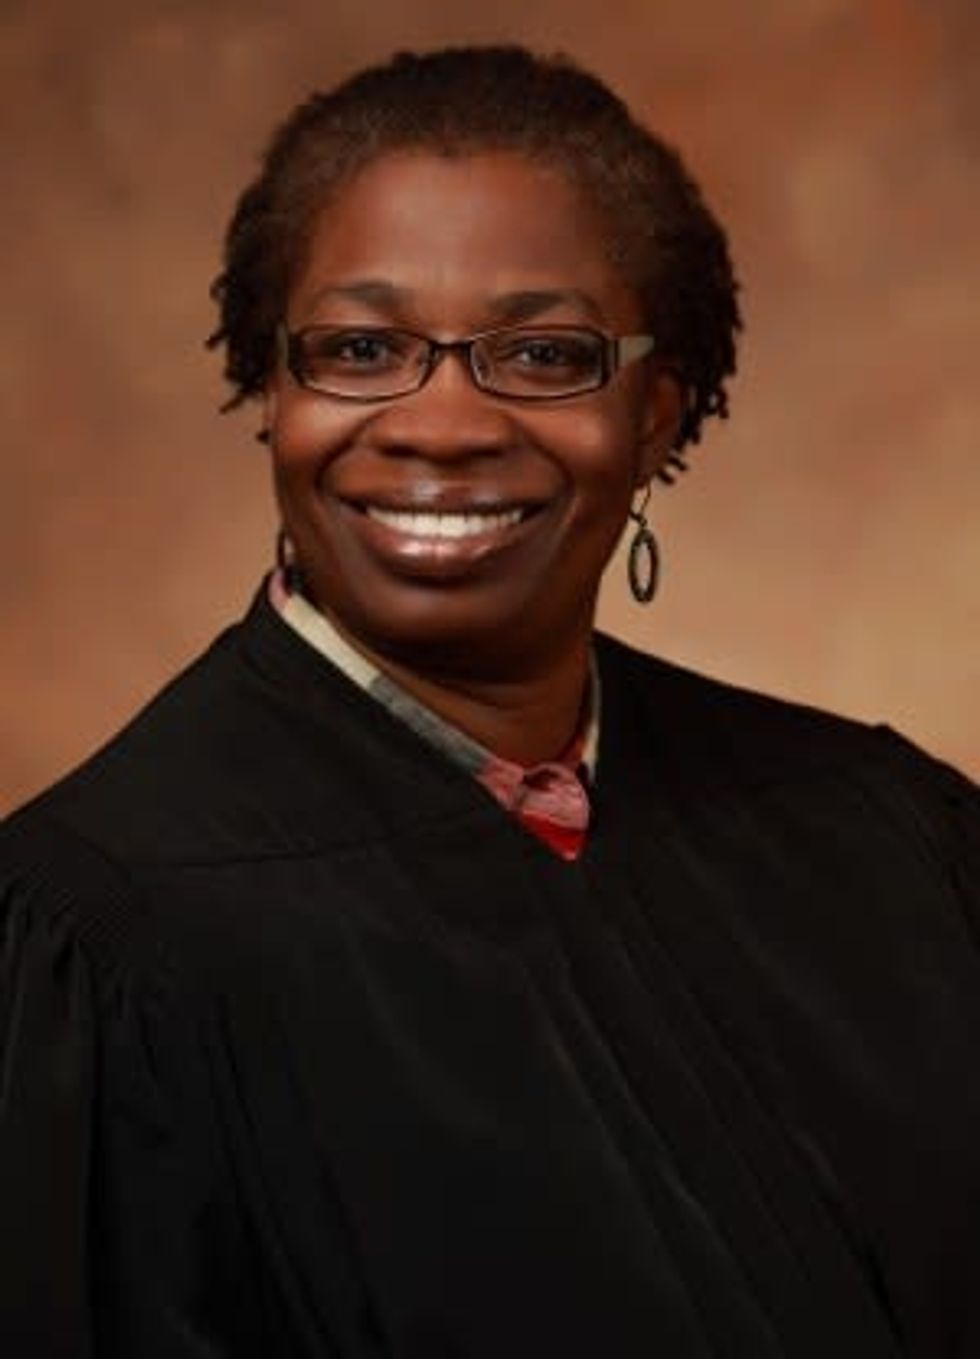 For the first time, a Black woman will serve on Missouri Supreme Court